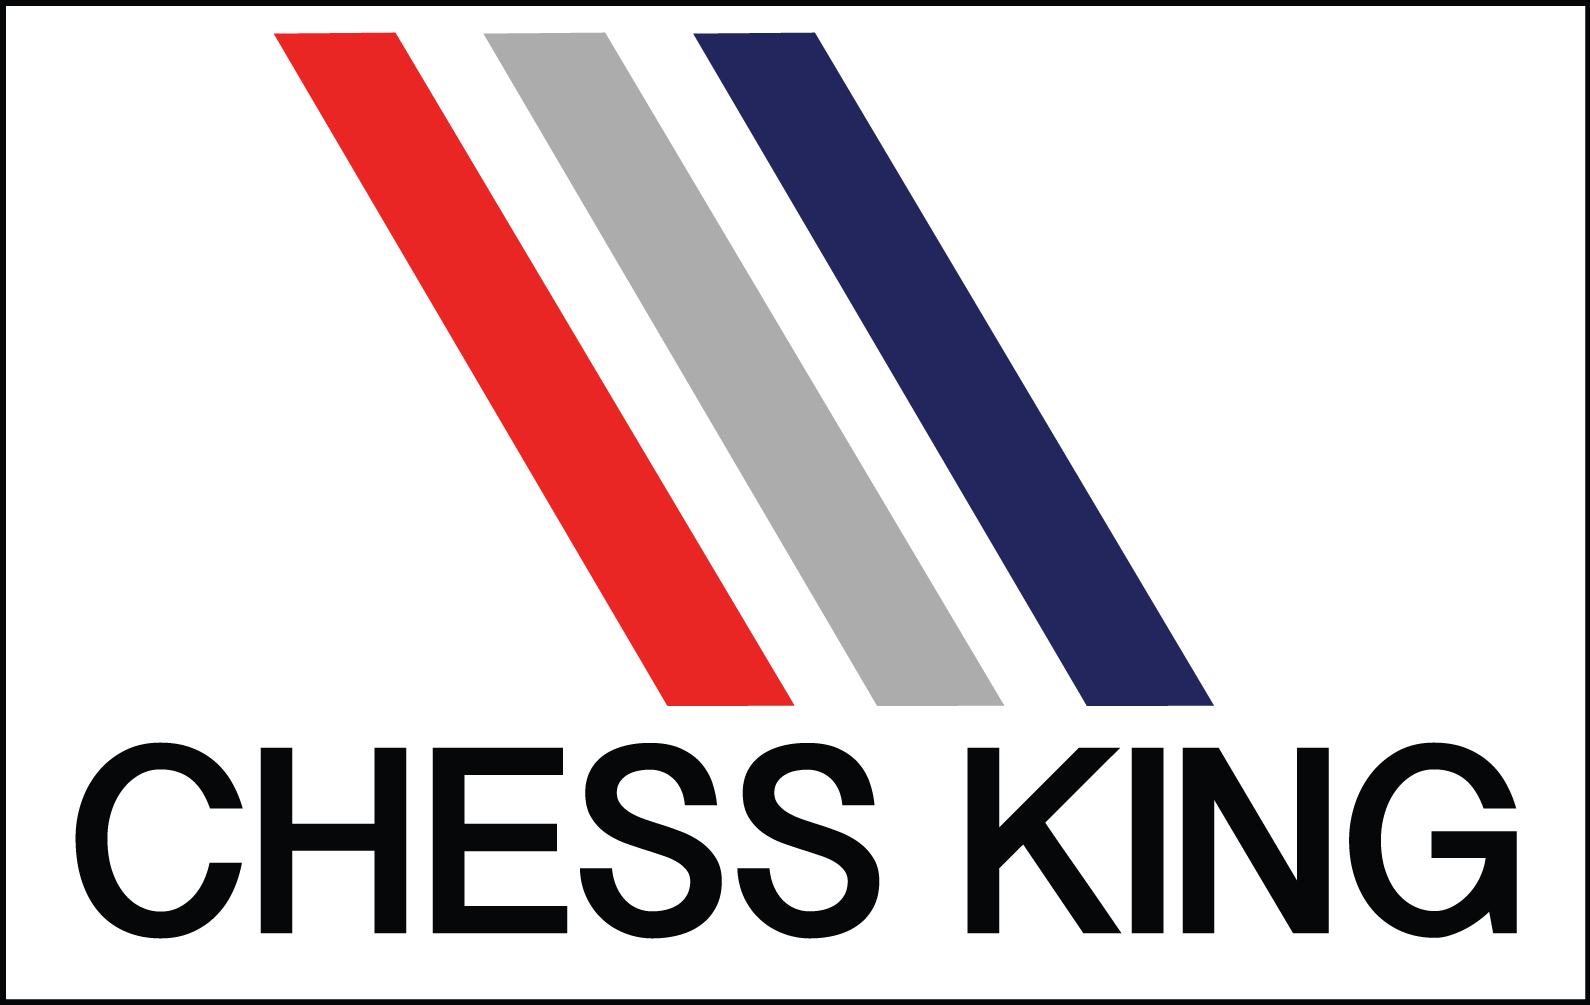 Chess_king2